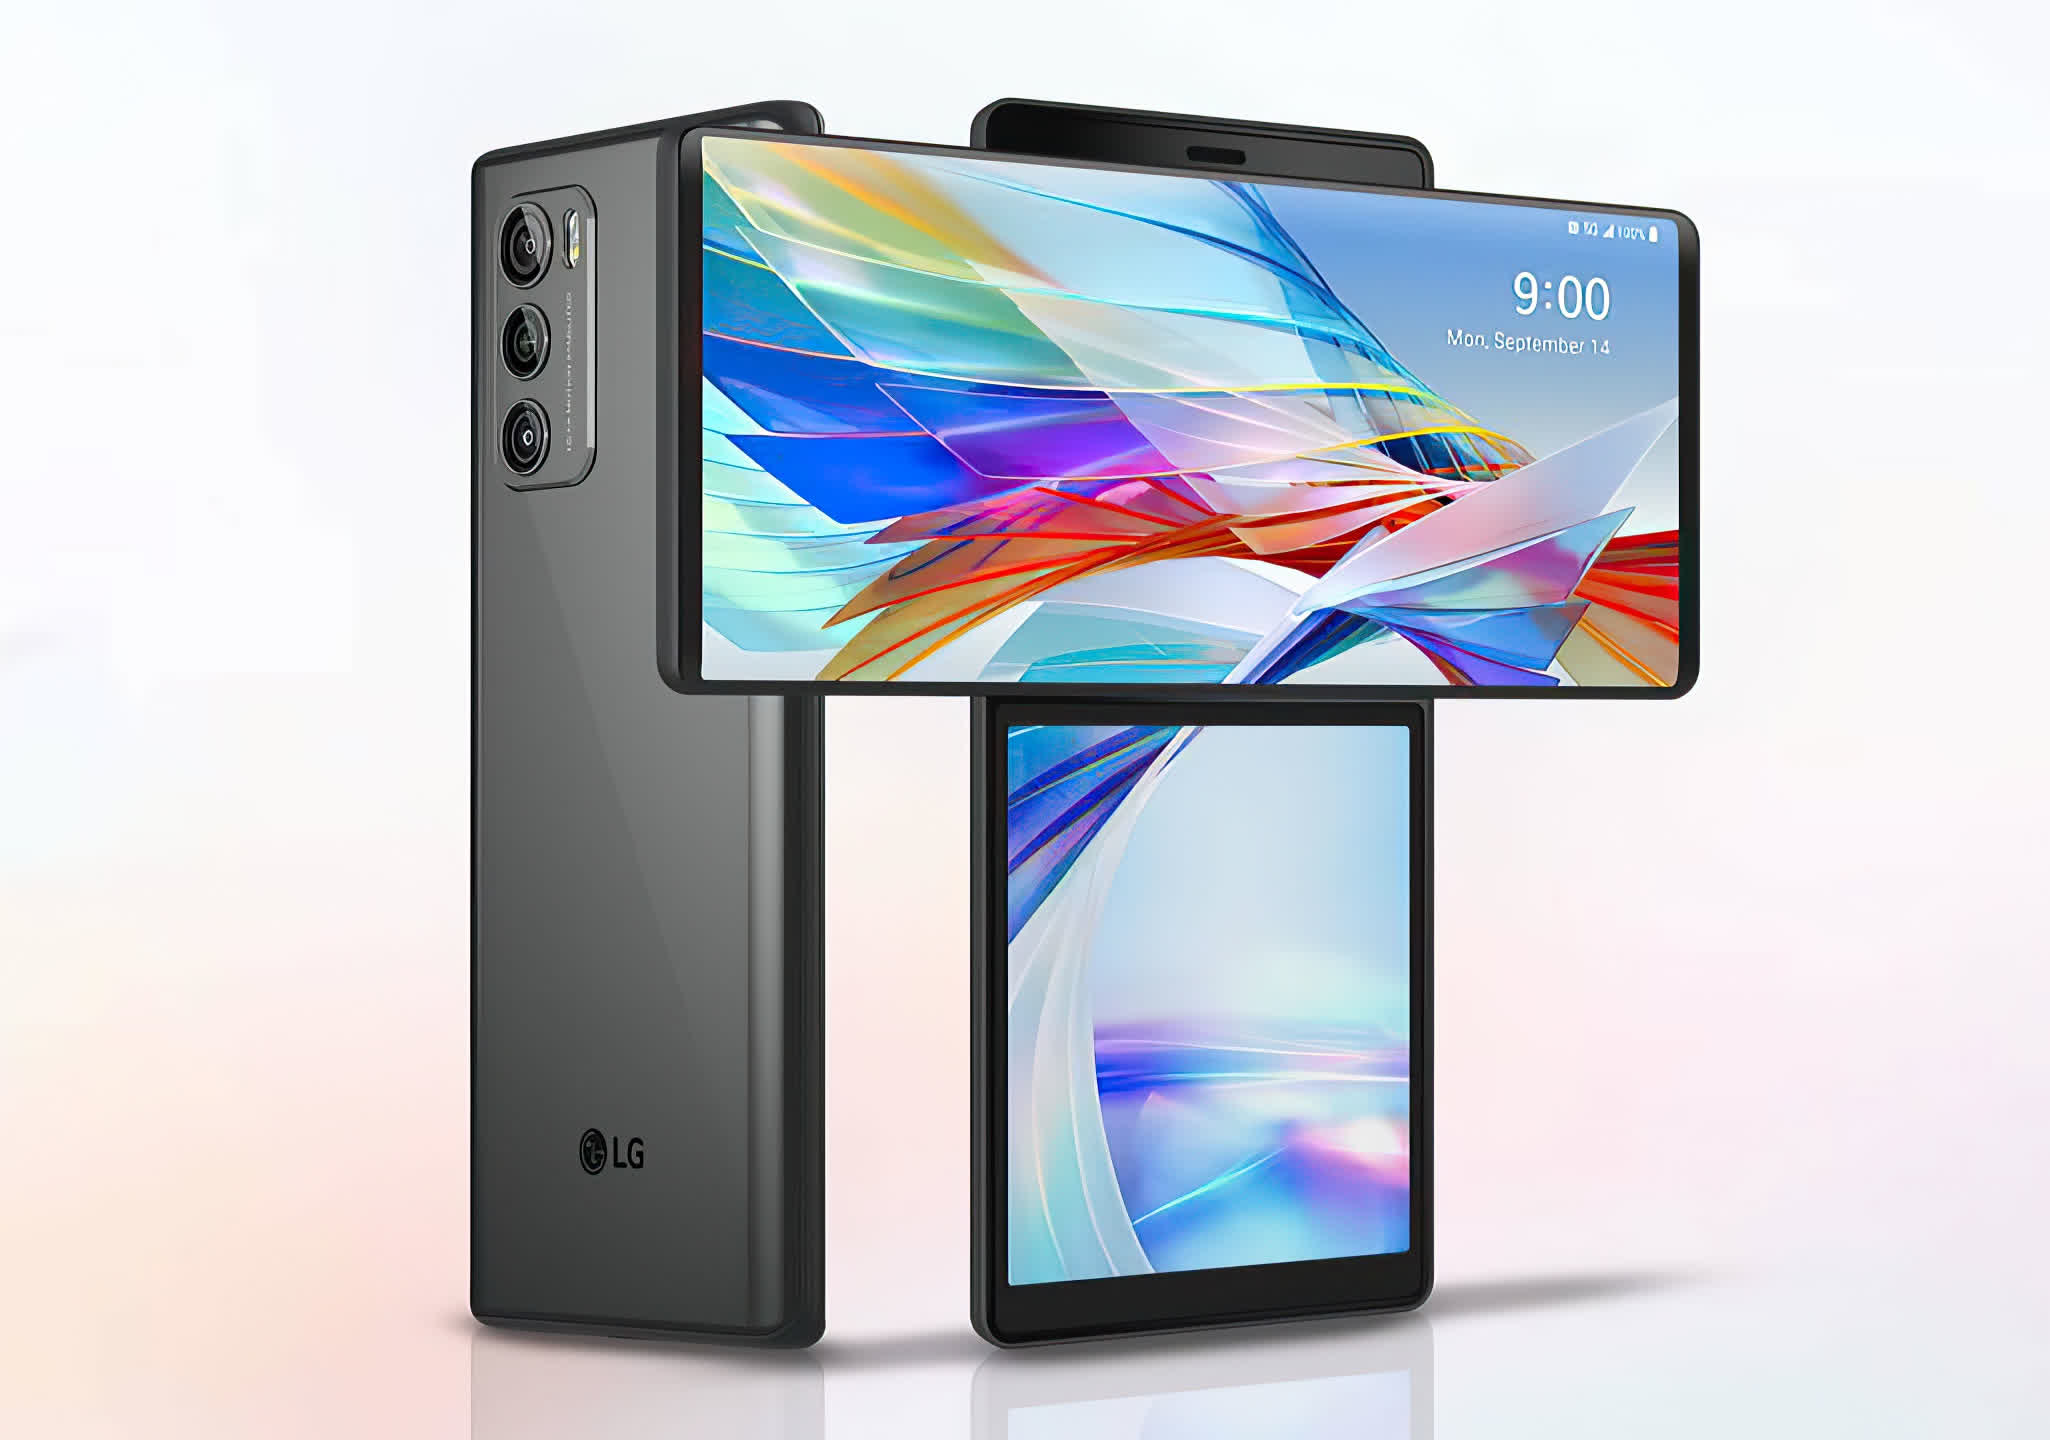 LG's Wing smartphone features a swivelling display